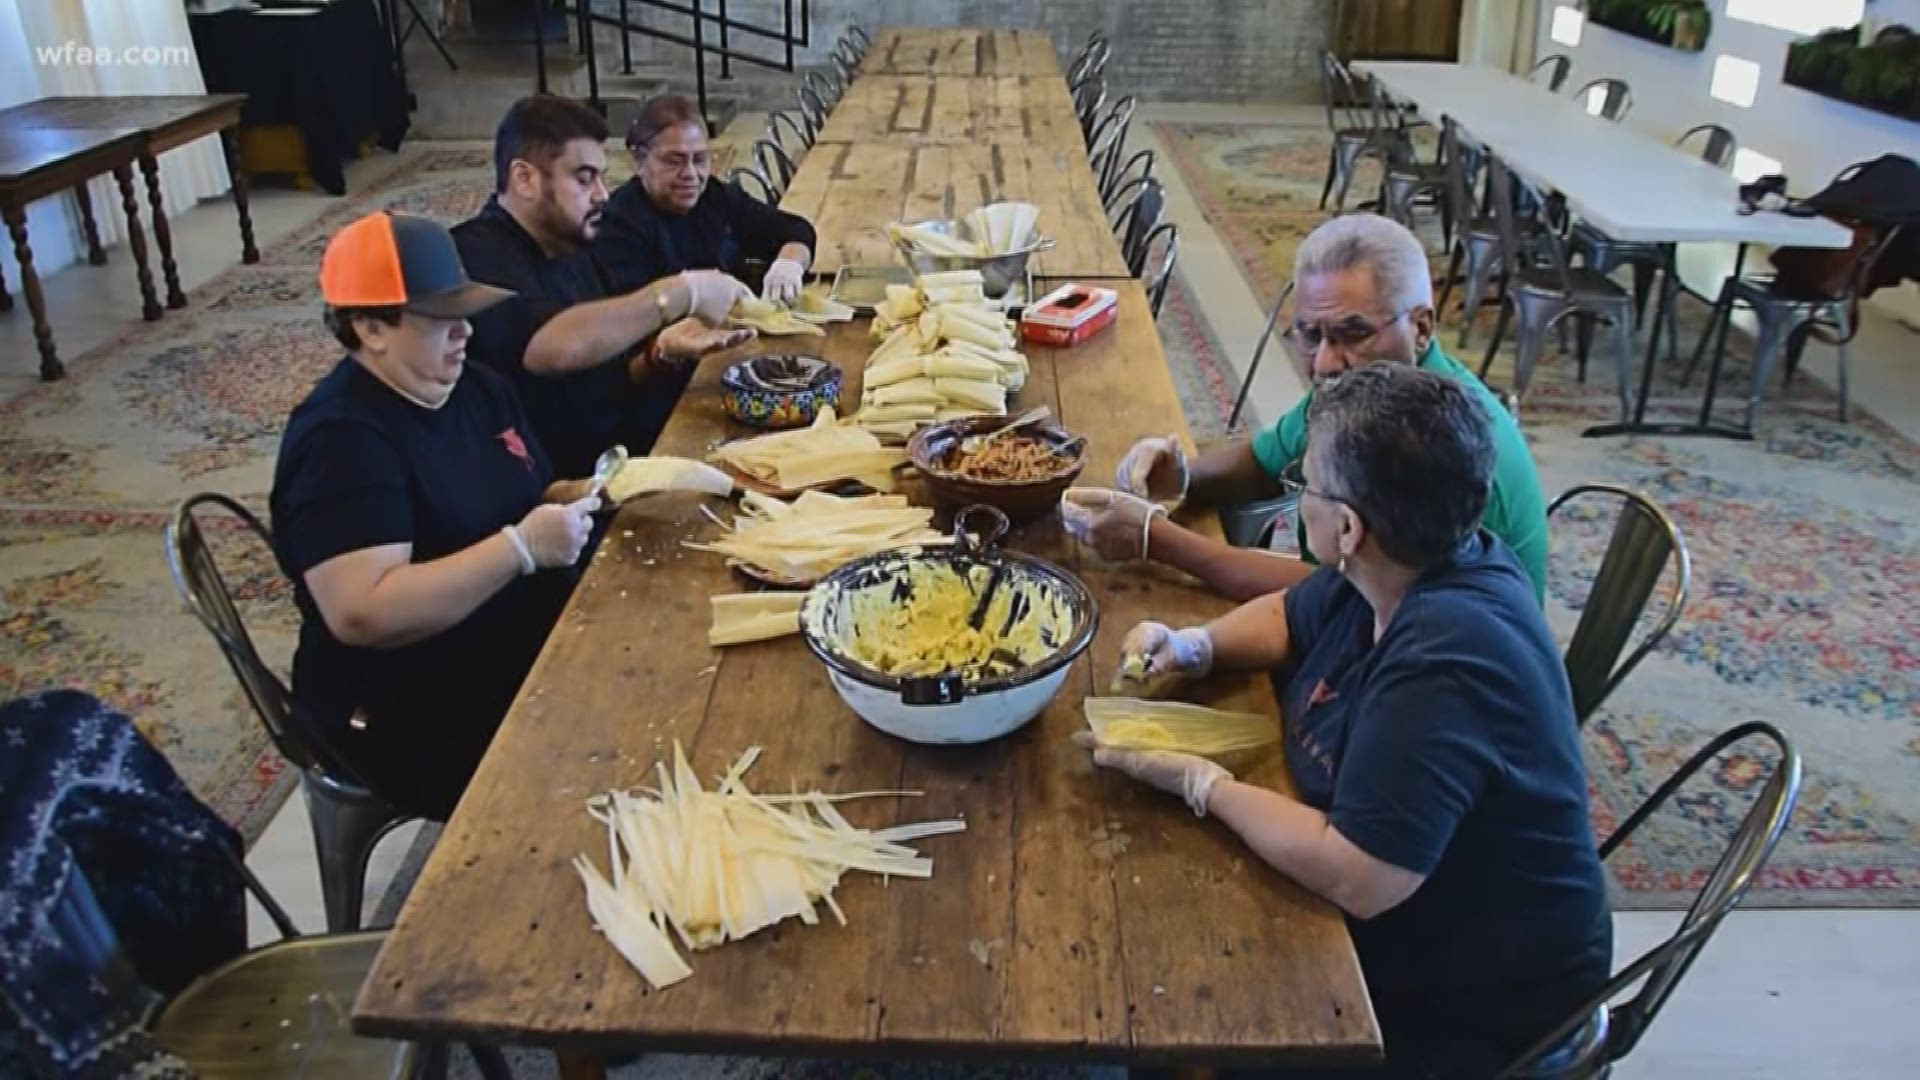 Christmas Tamales Dallas 2020 TGI Texas: Tradition of preparing Christmas tamales helps Fort